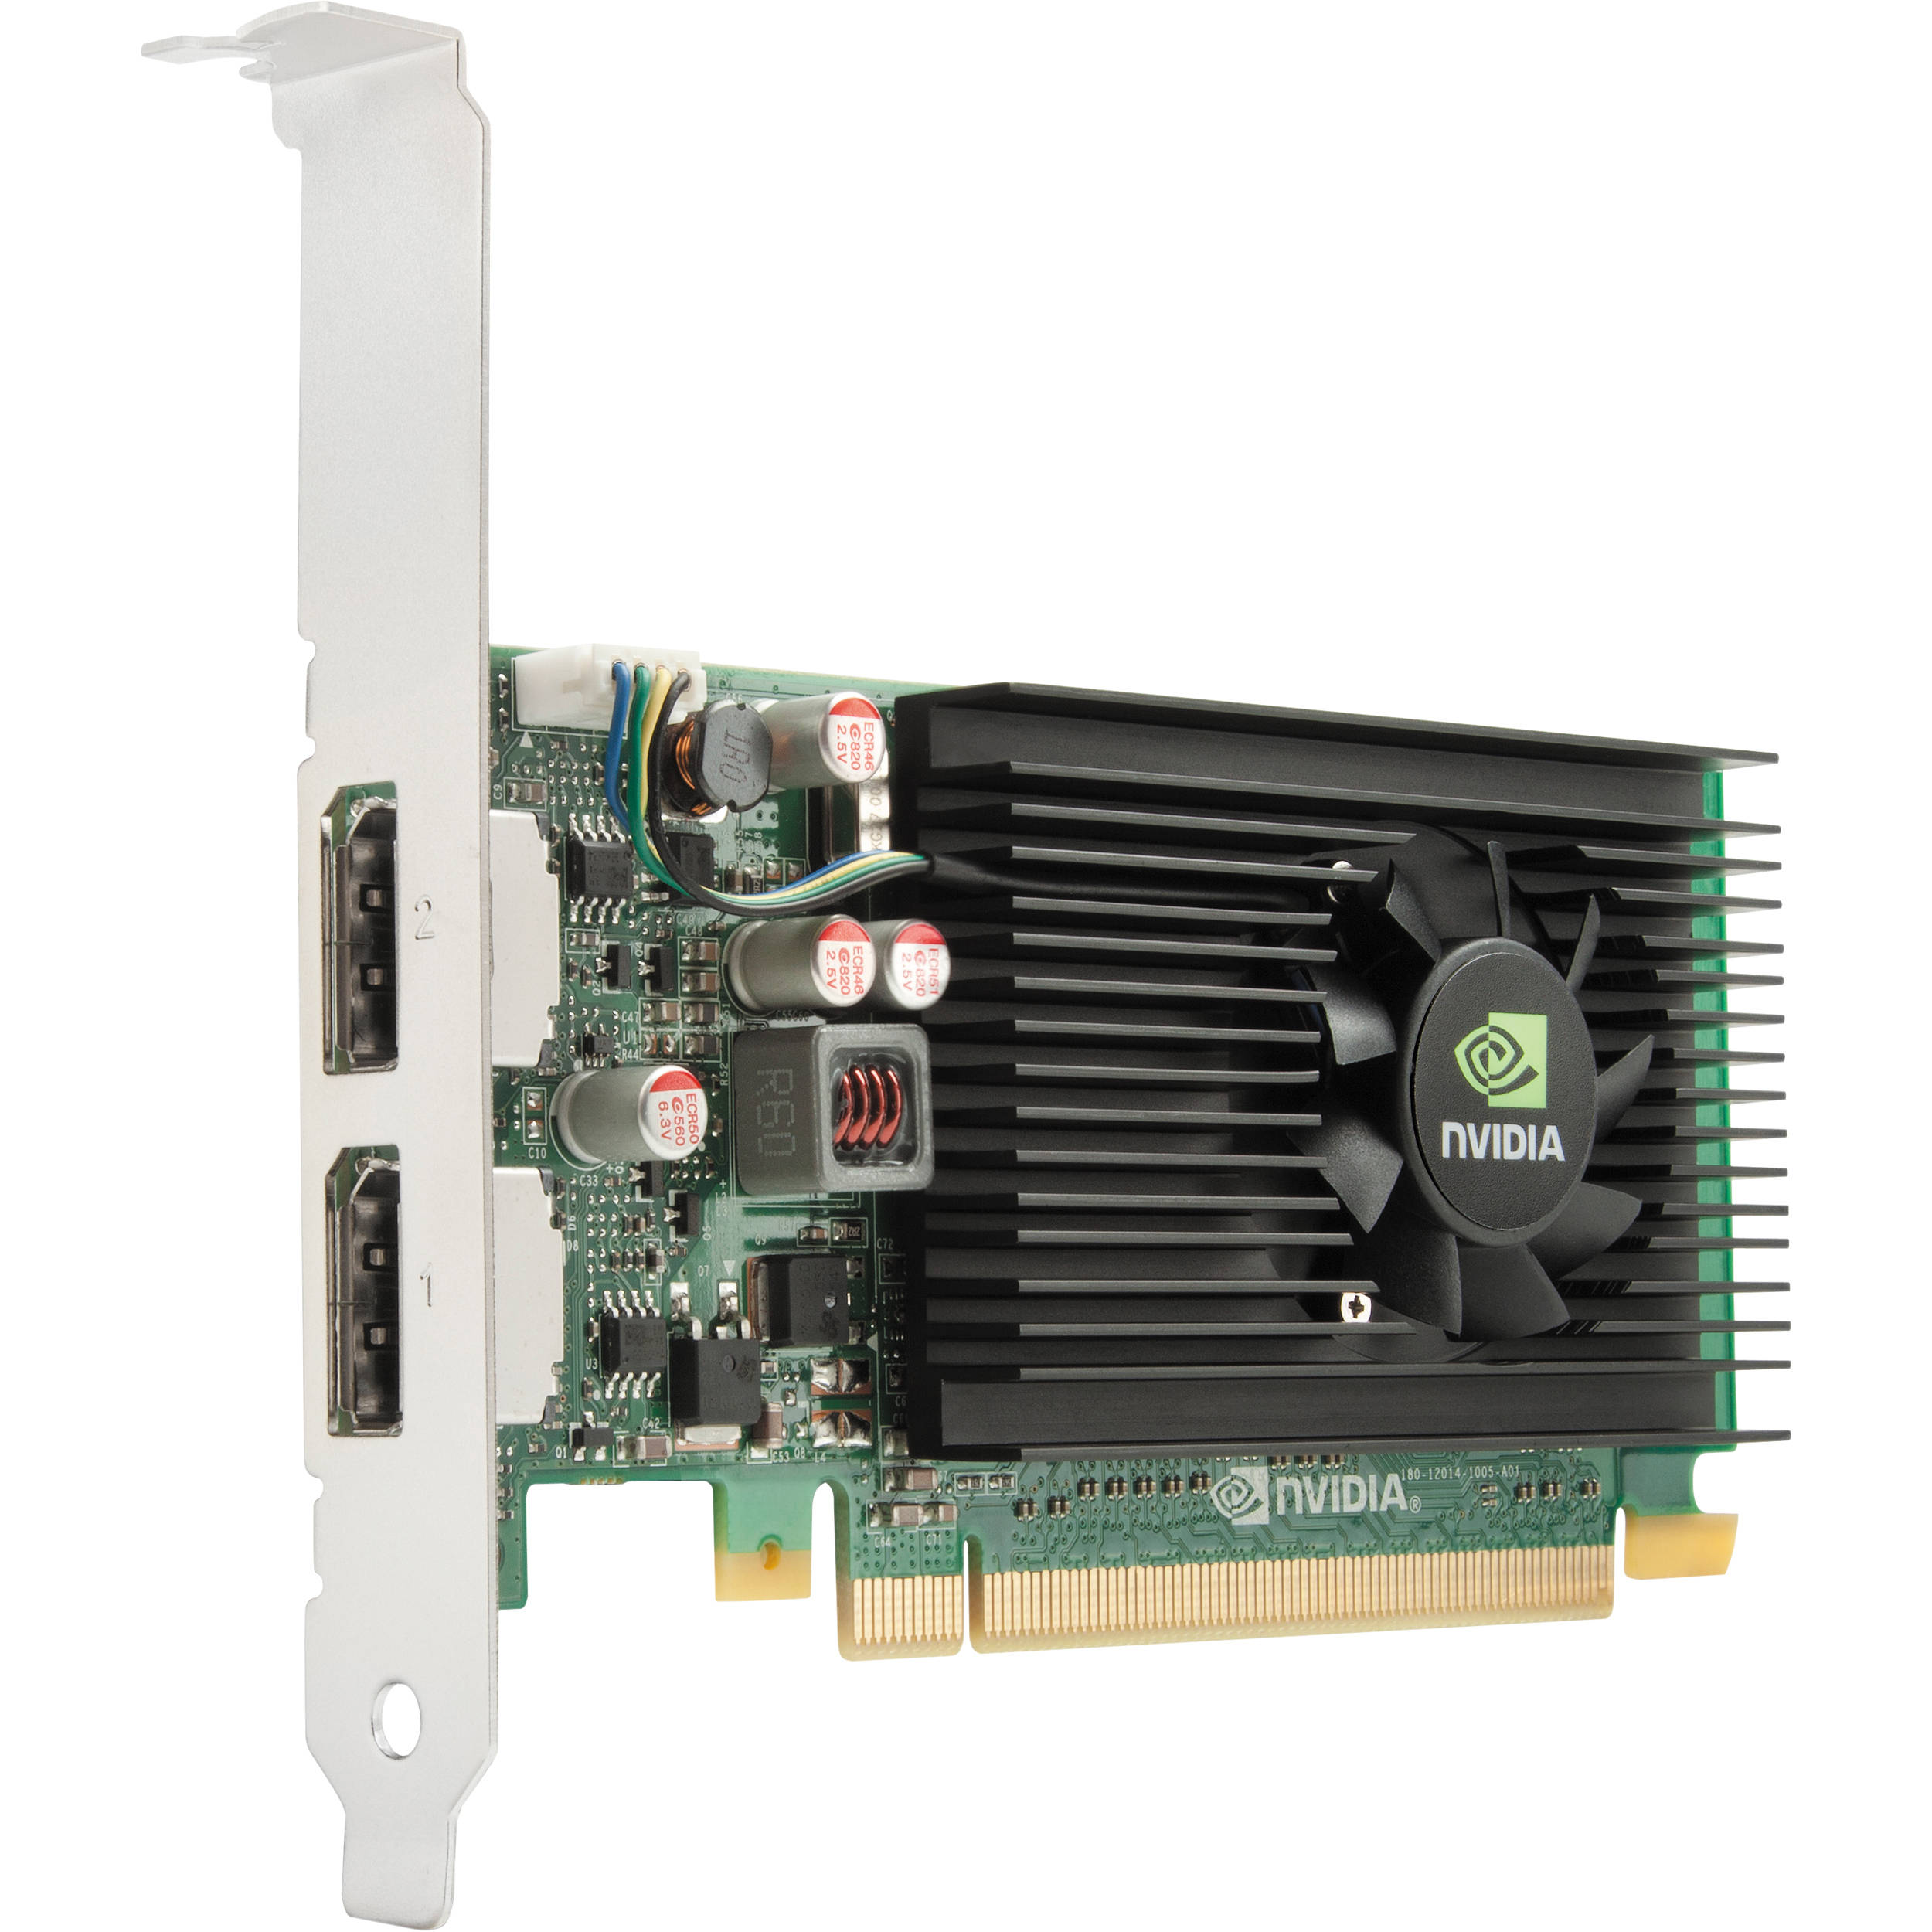 Dell NVS 310 low profile graphics card 1 GB DDR3 64-bit K3WRC